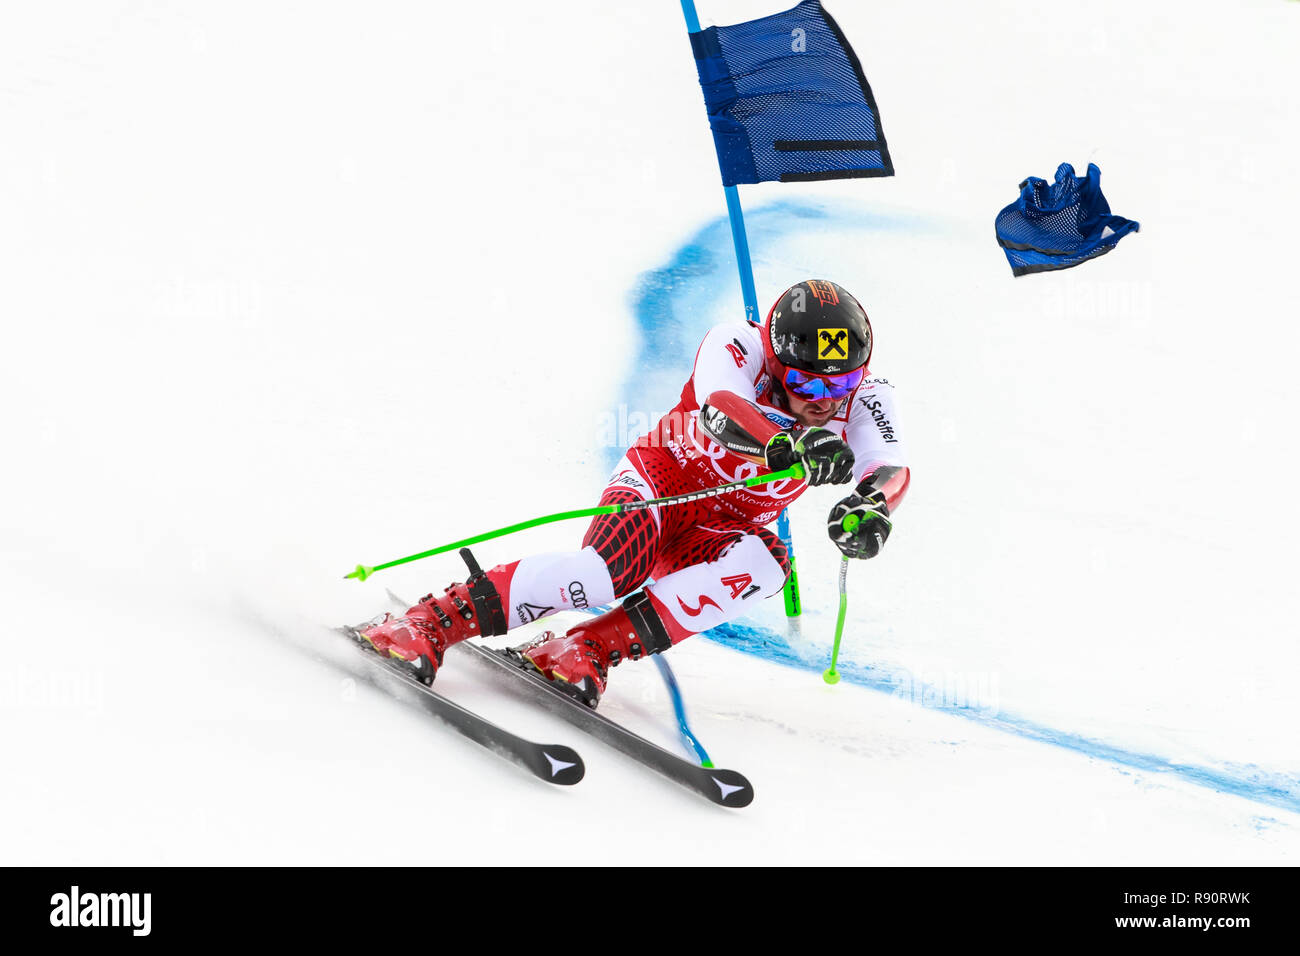 Alta Badia, Italy 16 December 2018.  HIRSCHER Marcel (Aut) competing in the Audi Fis Alpine Skiing World Cup Men's Giant Slalom on the Gran Risa - Stock Image